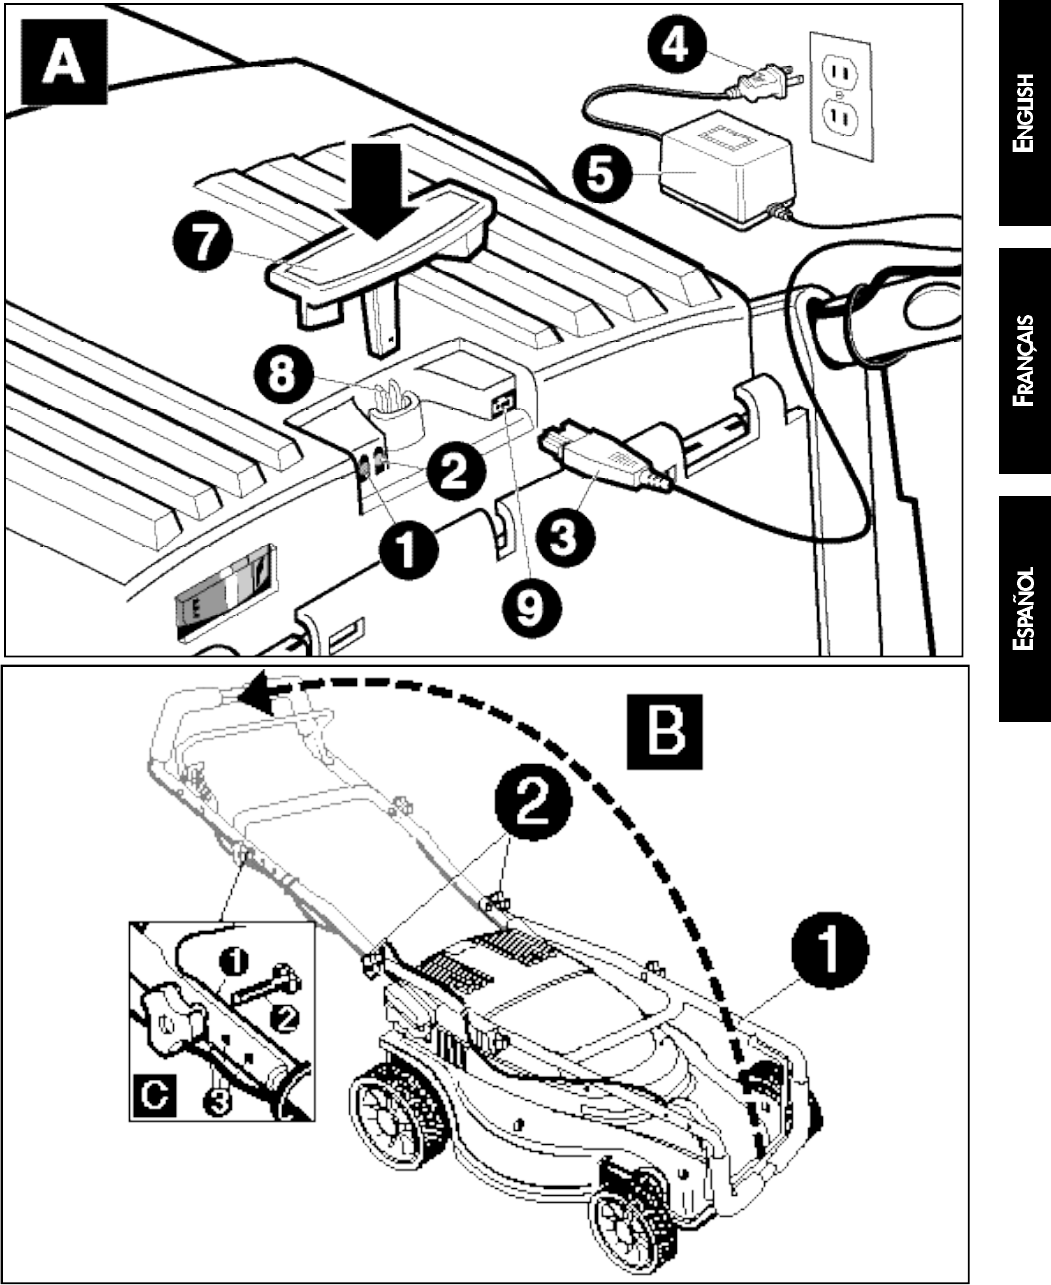 Page 19 of Black & Decker Lawn Mower 598968-00 User Guide